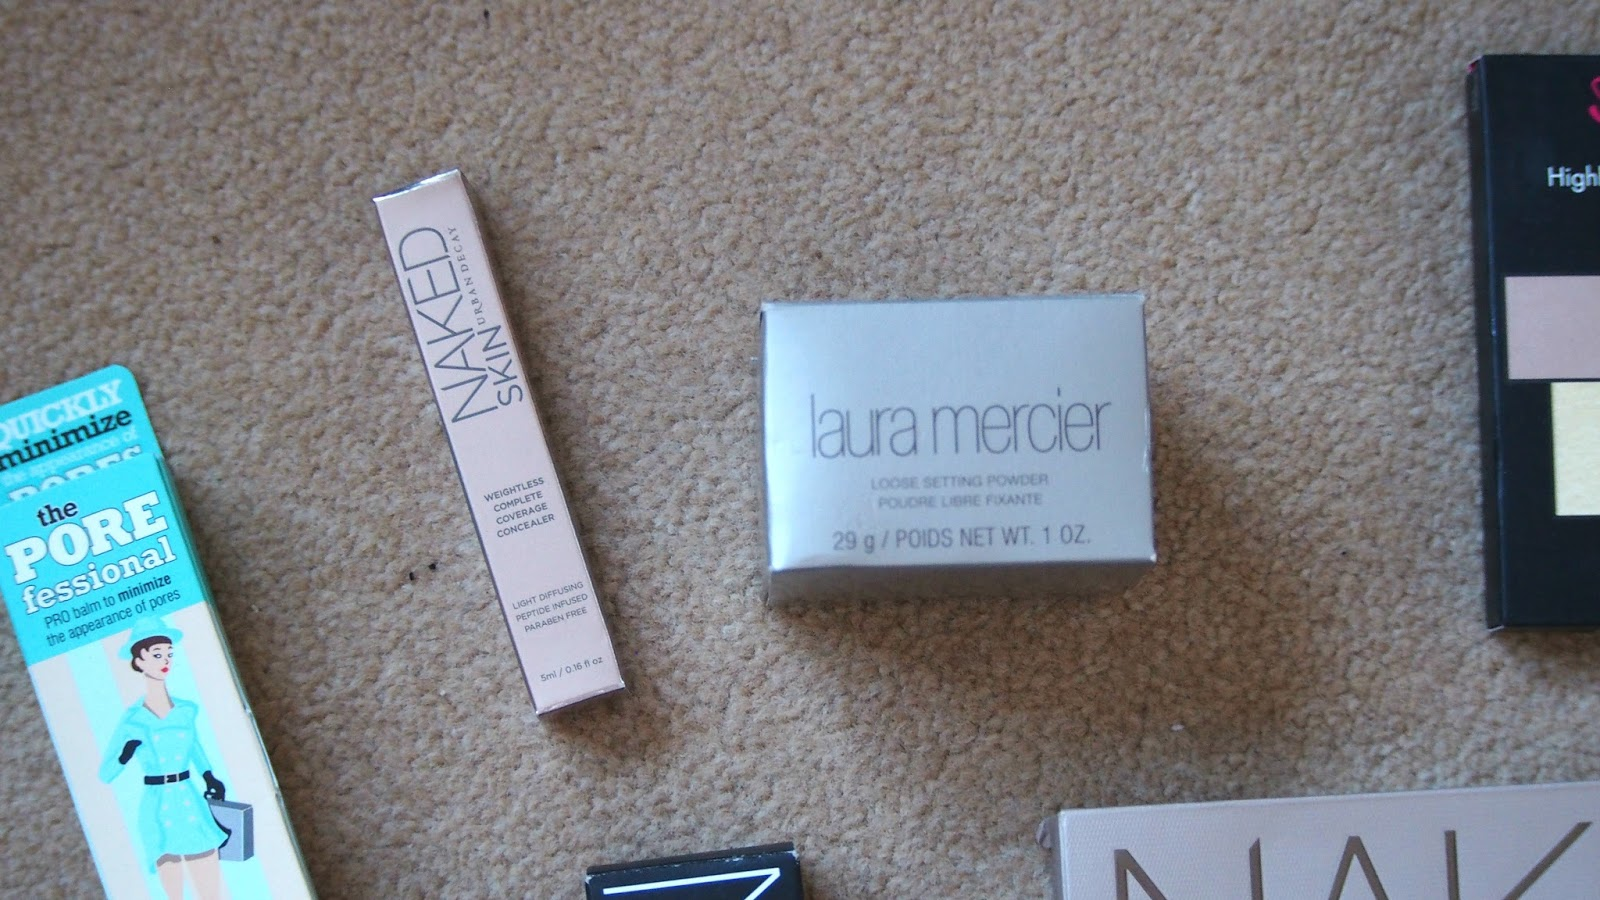 Urban Decay concealer and Laura Mercier Powder